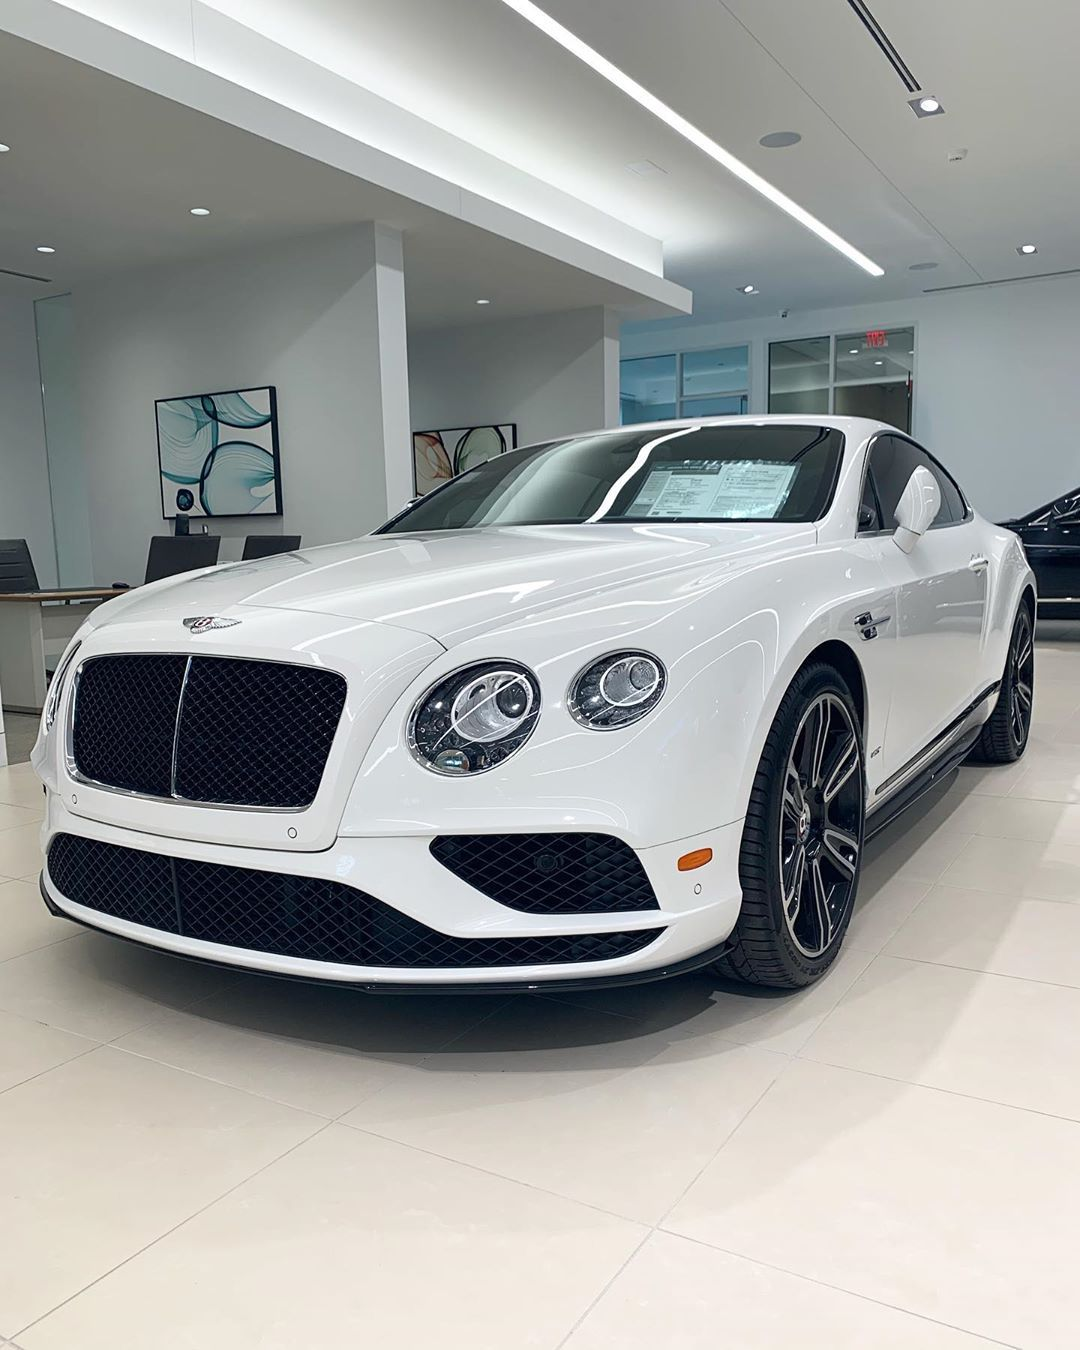 Bentley Dallas On Instagram Sleek And Stylish Doesn T Only Apply To New Cars Certified Bentleydallas Bentley Dallas Has Various Certified Pre Owne Voiture